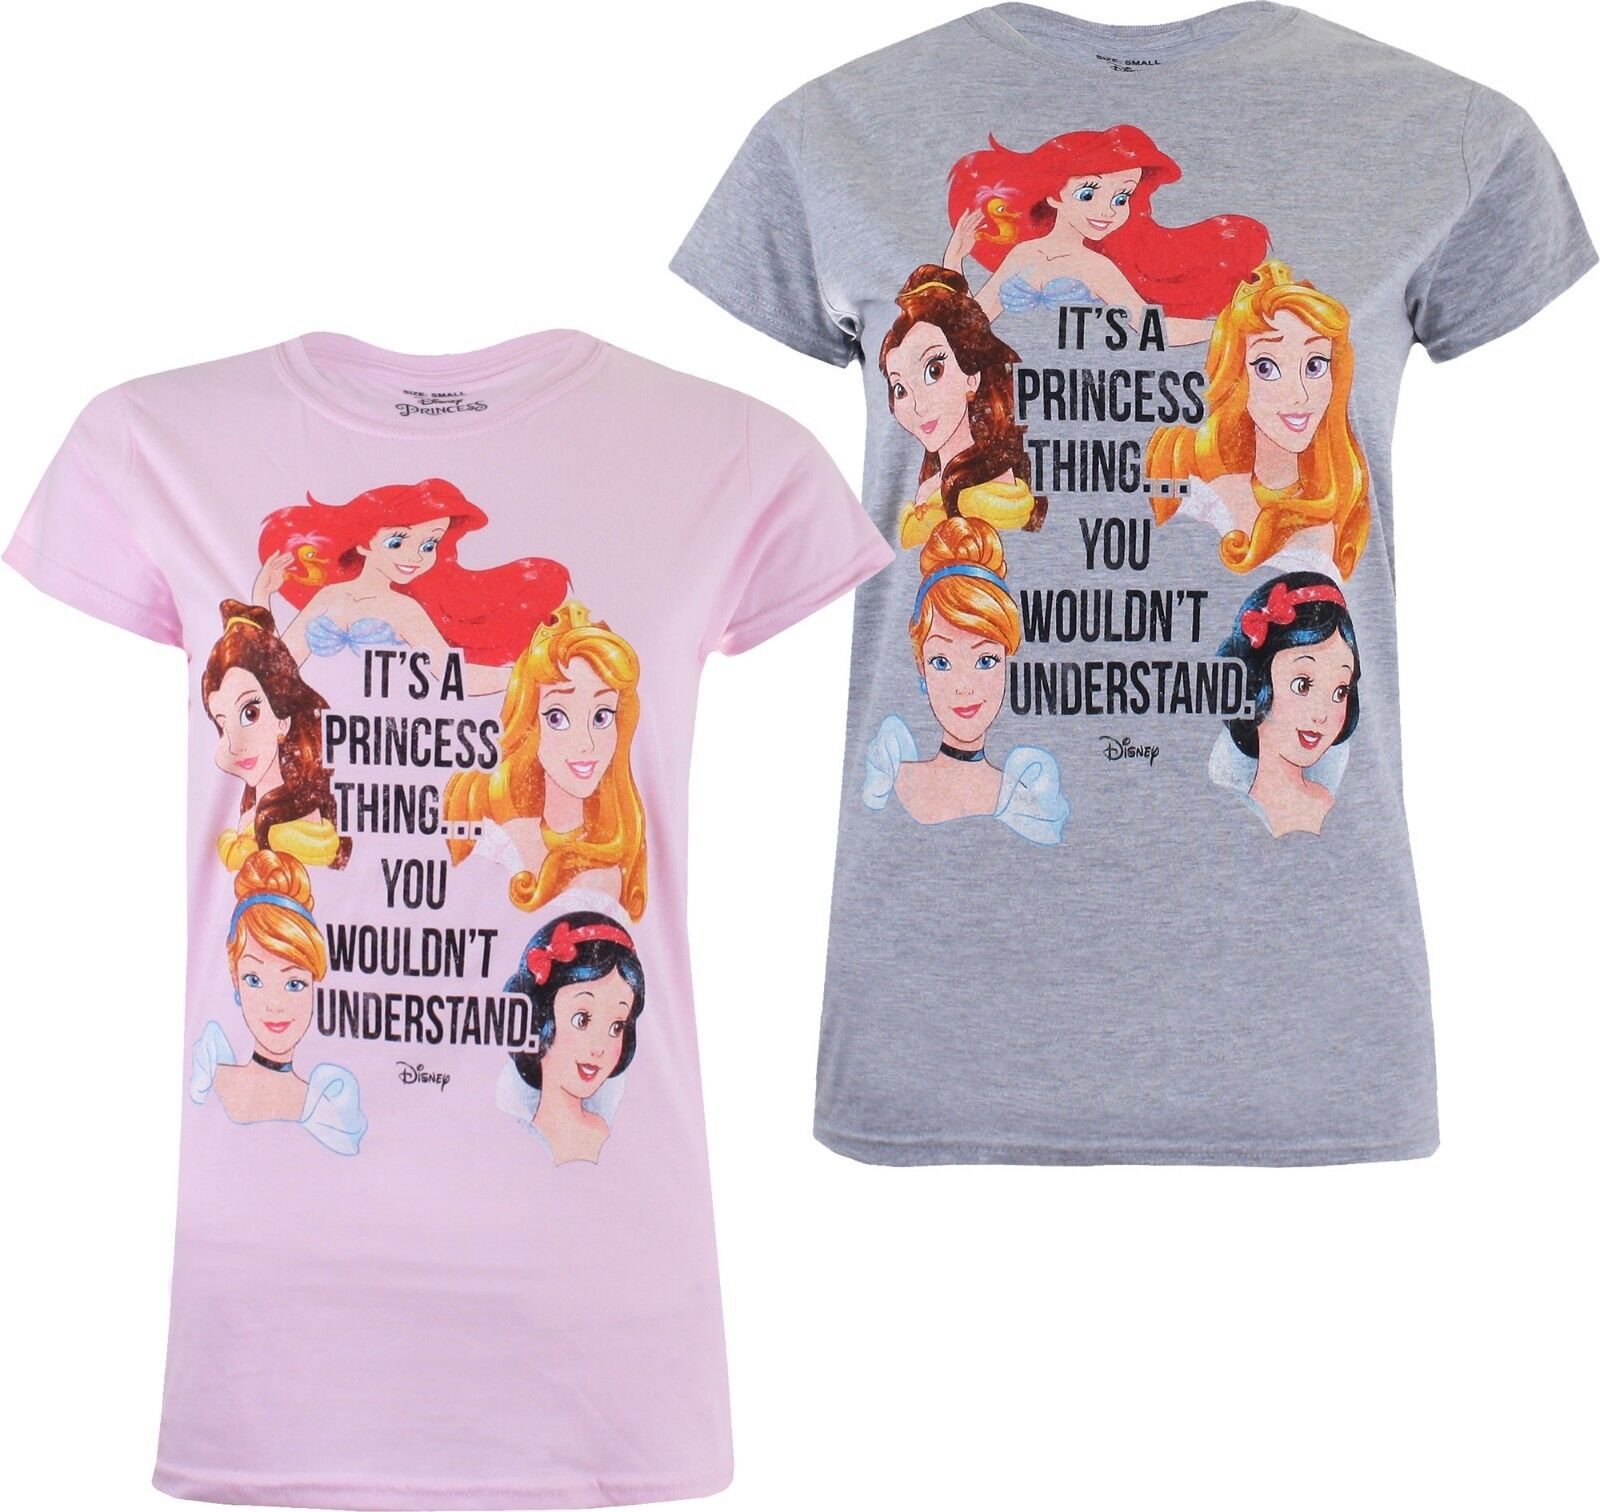 2cfea0a3 Disney - It's a Princess Thing - Ladies Womens T-Shirt - Sizes S-XL ...